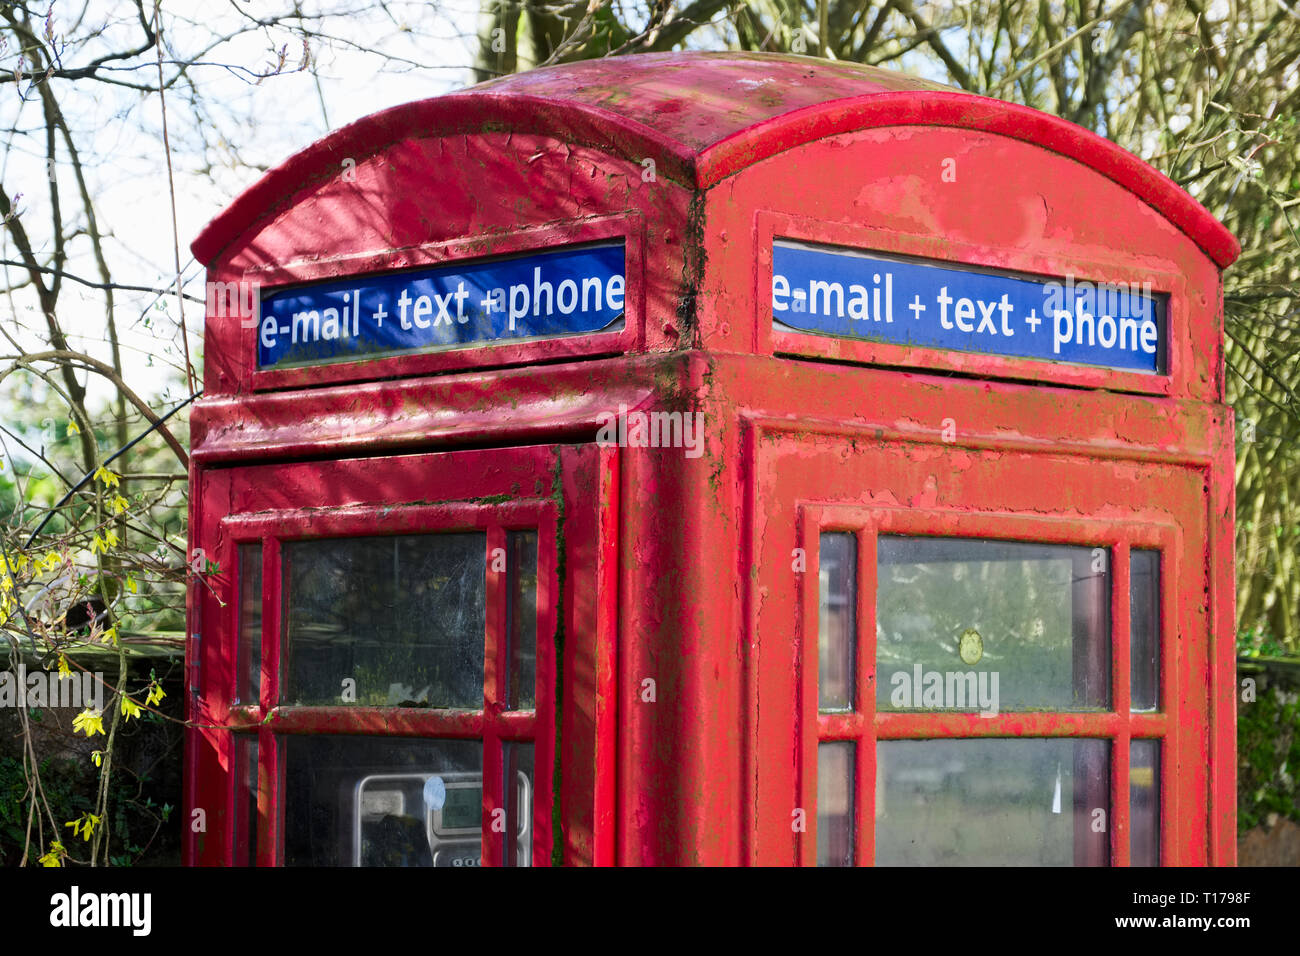 Red telephone booth box for email text and phone retro communication - Stock Image